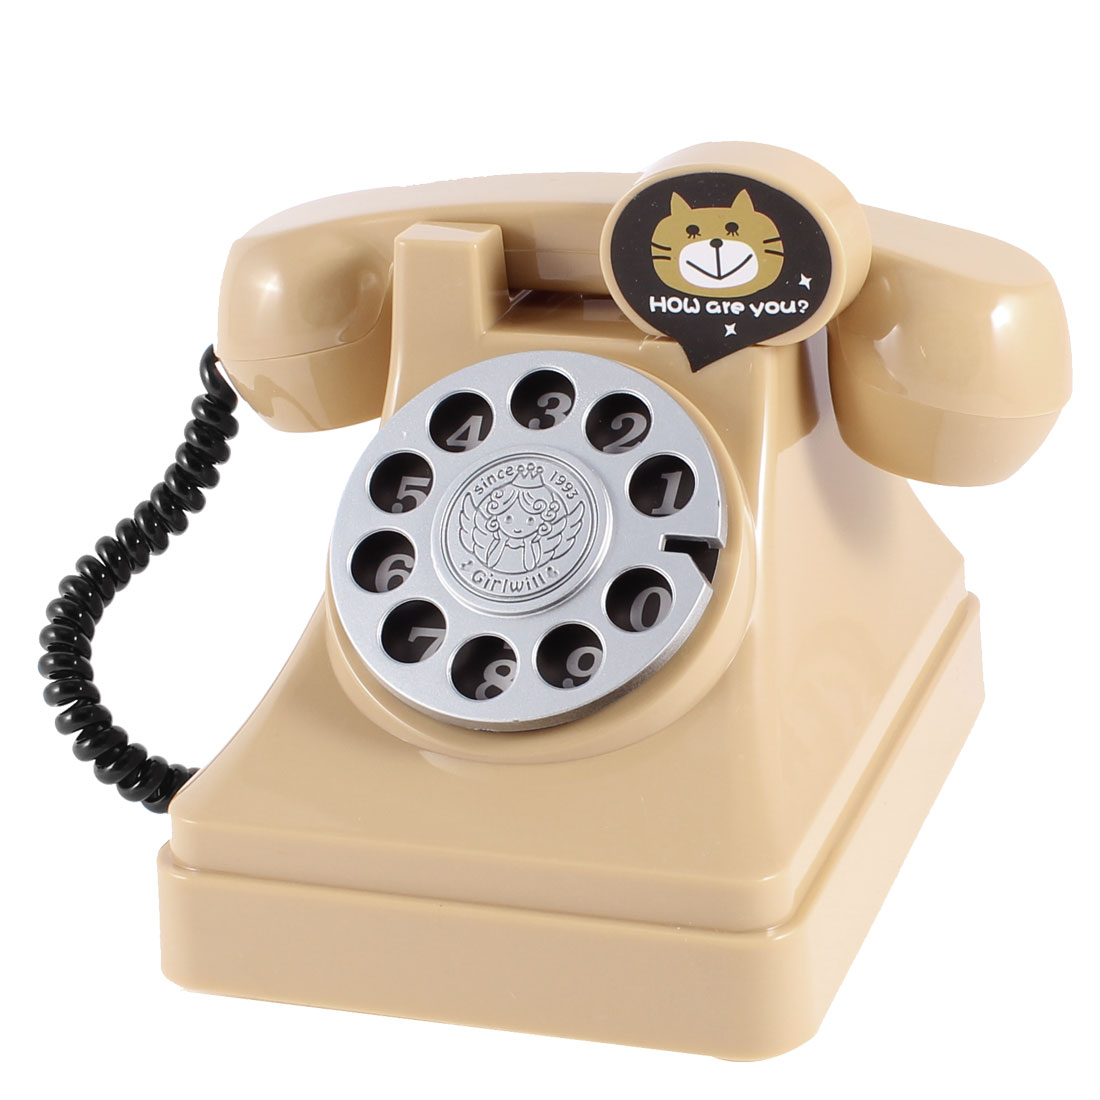 Khaki Plastic Rotary Dial Telephone Shaped Coin Money Holder Saving Pot